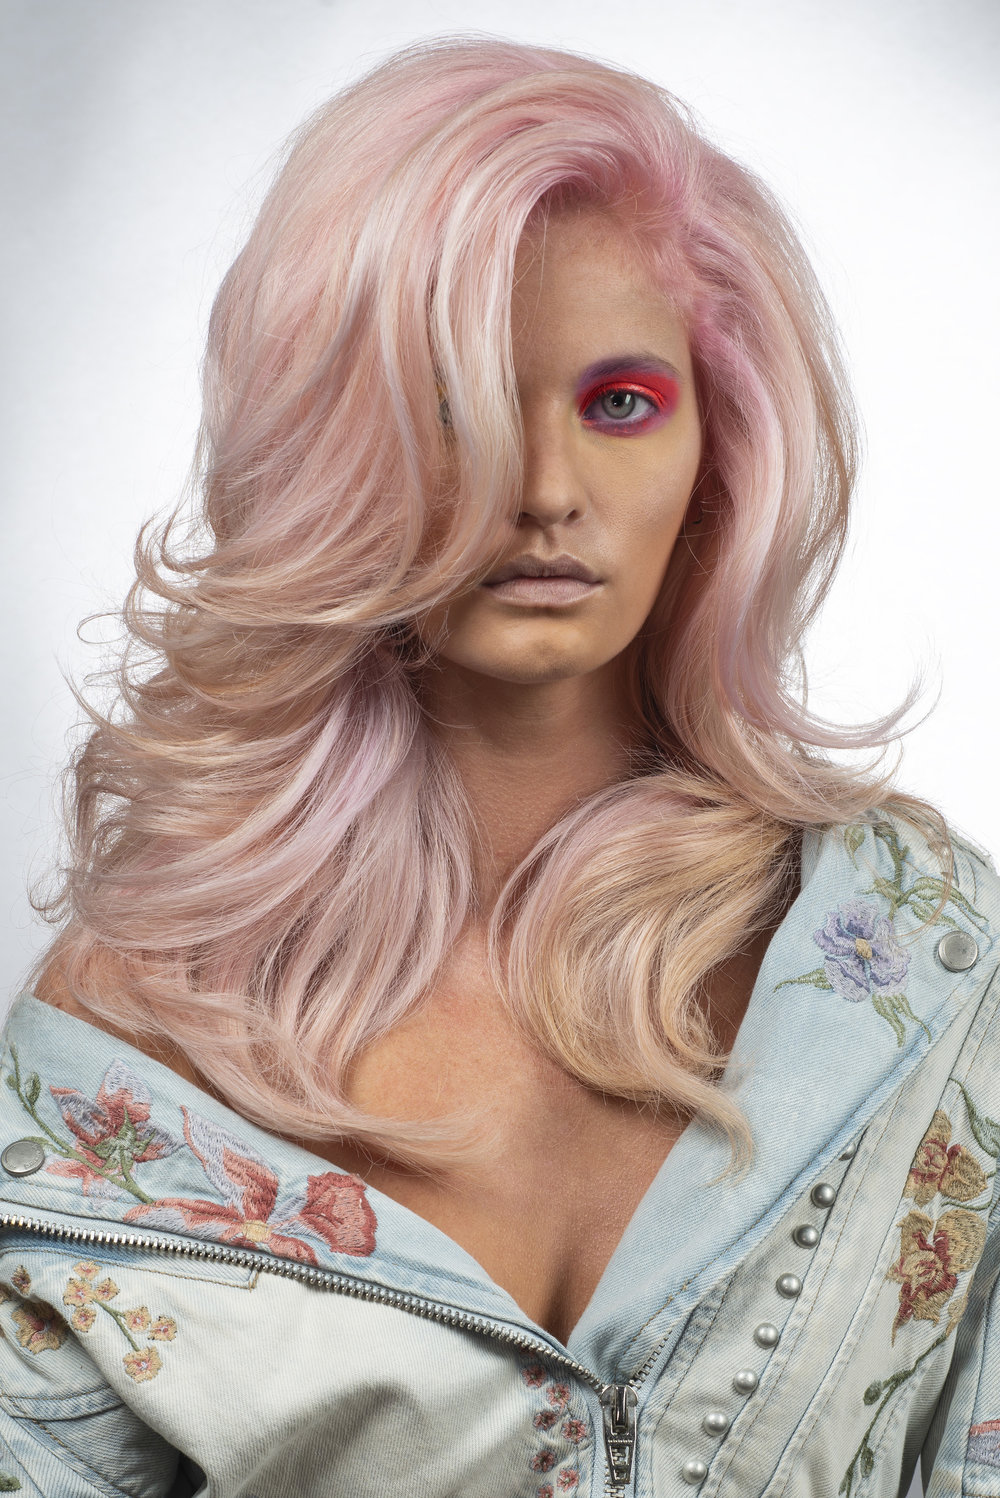 I entered created my first color collection for NAHA